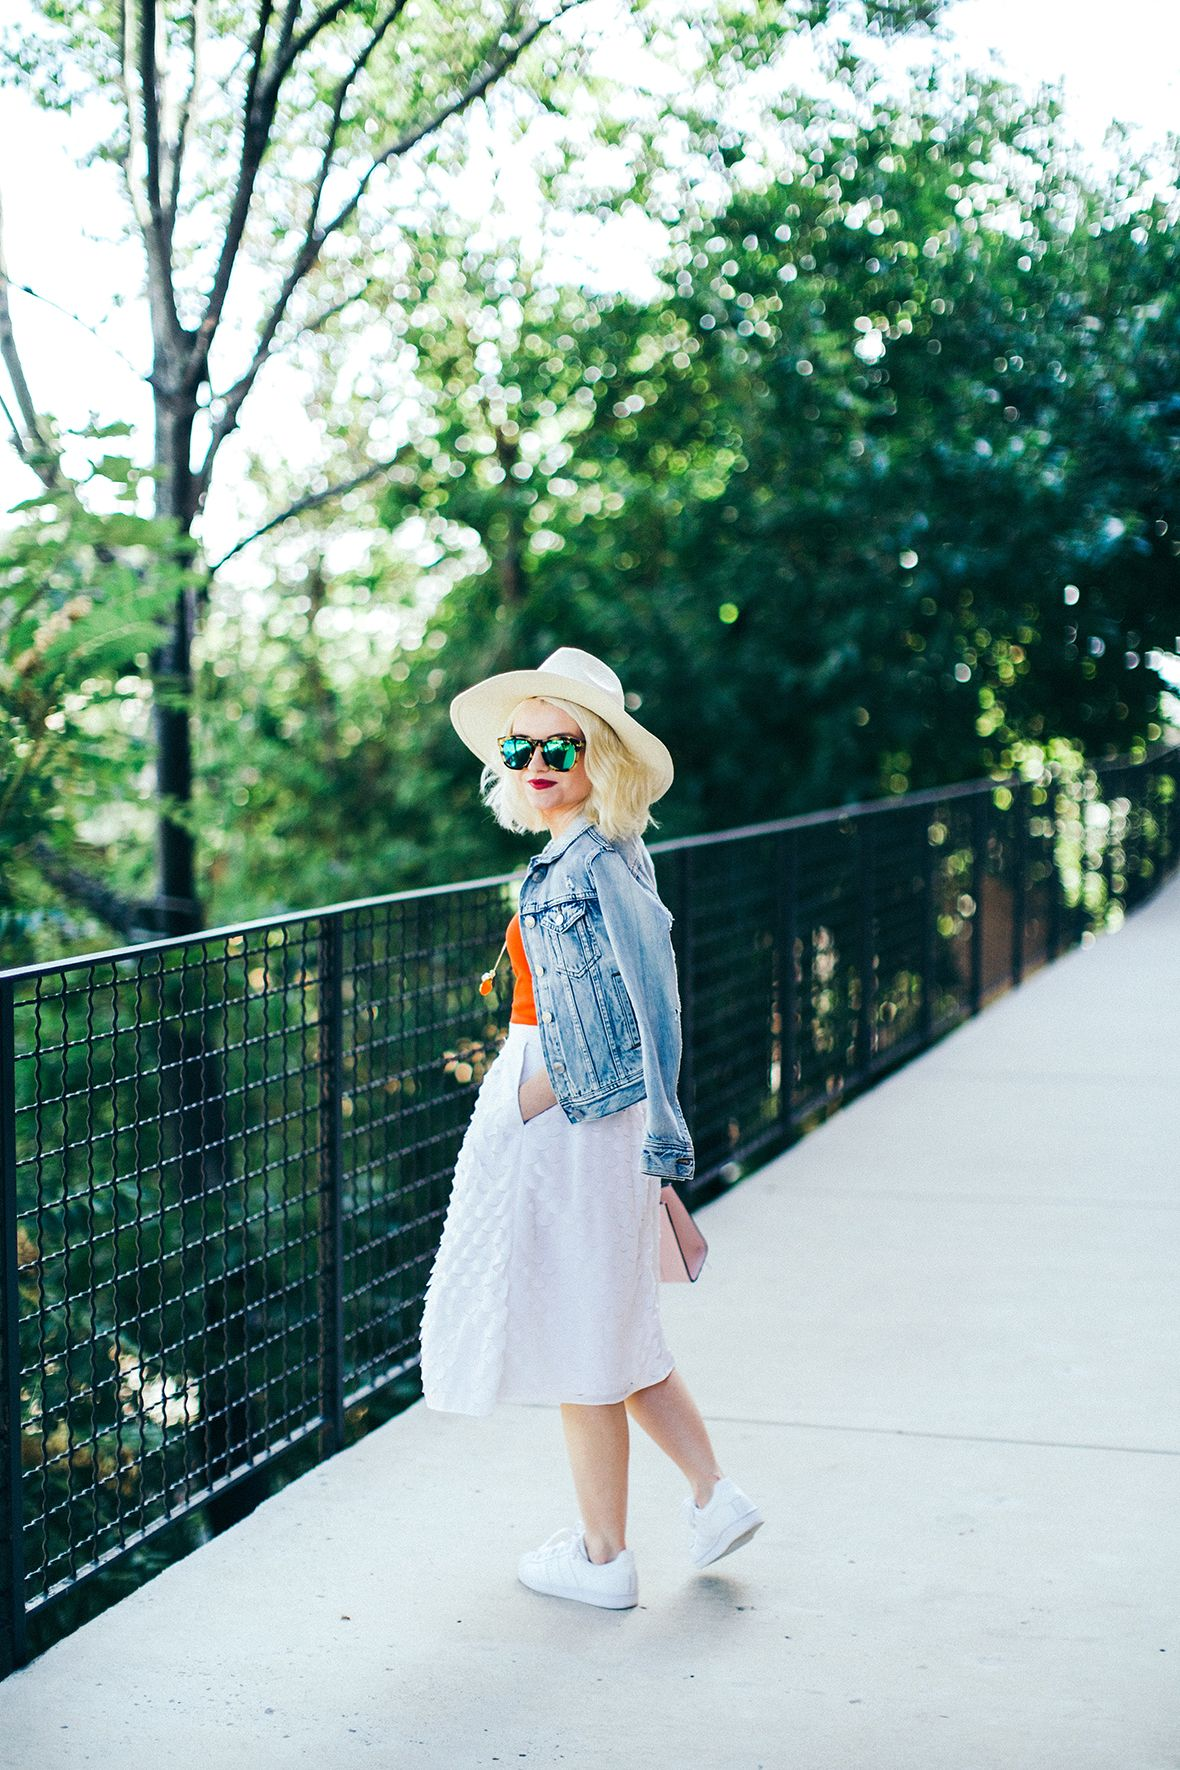 Poor Little It Girl - Sneakers and Skirts - @Poor Little It Girl